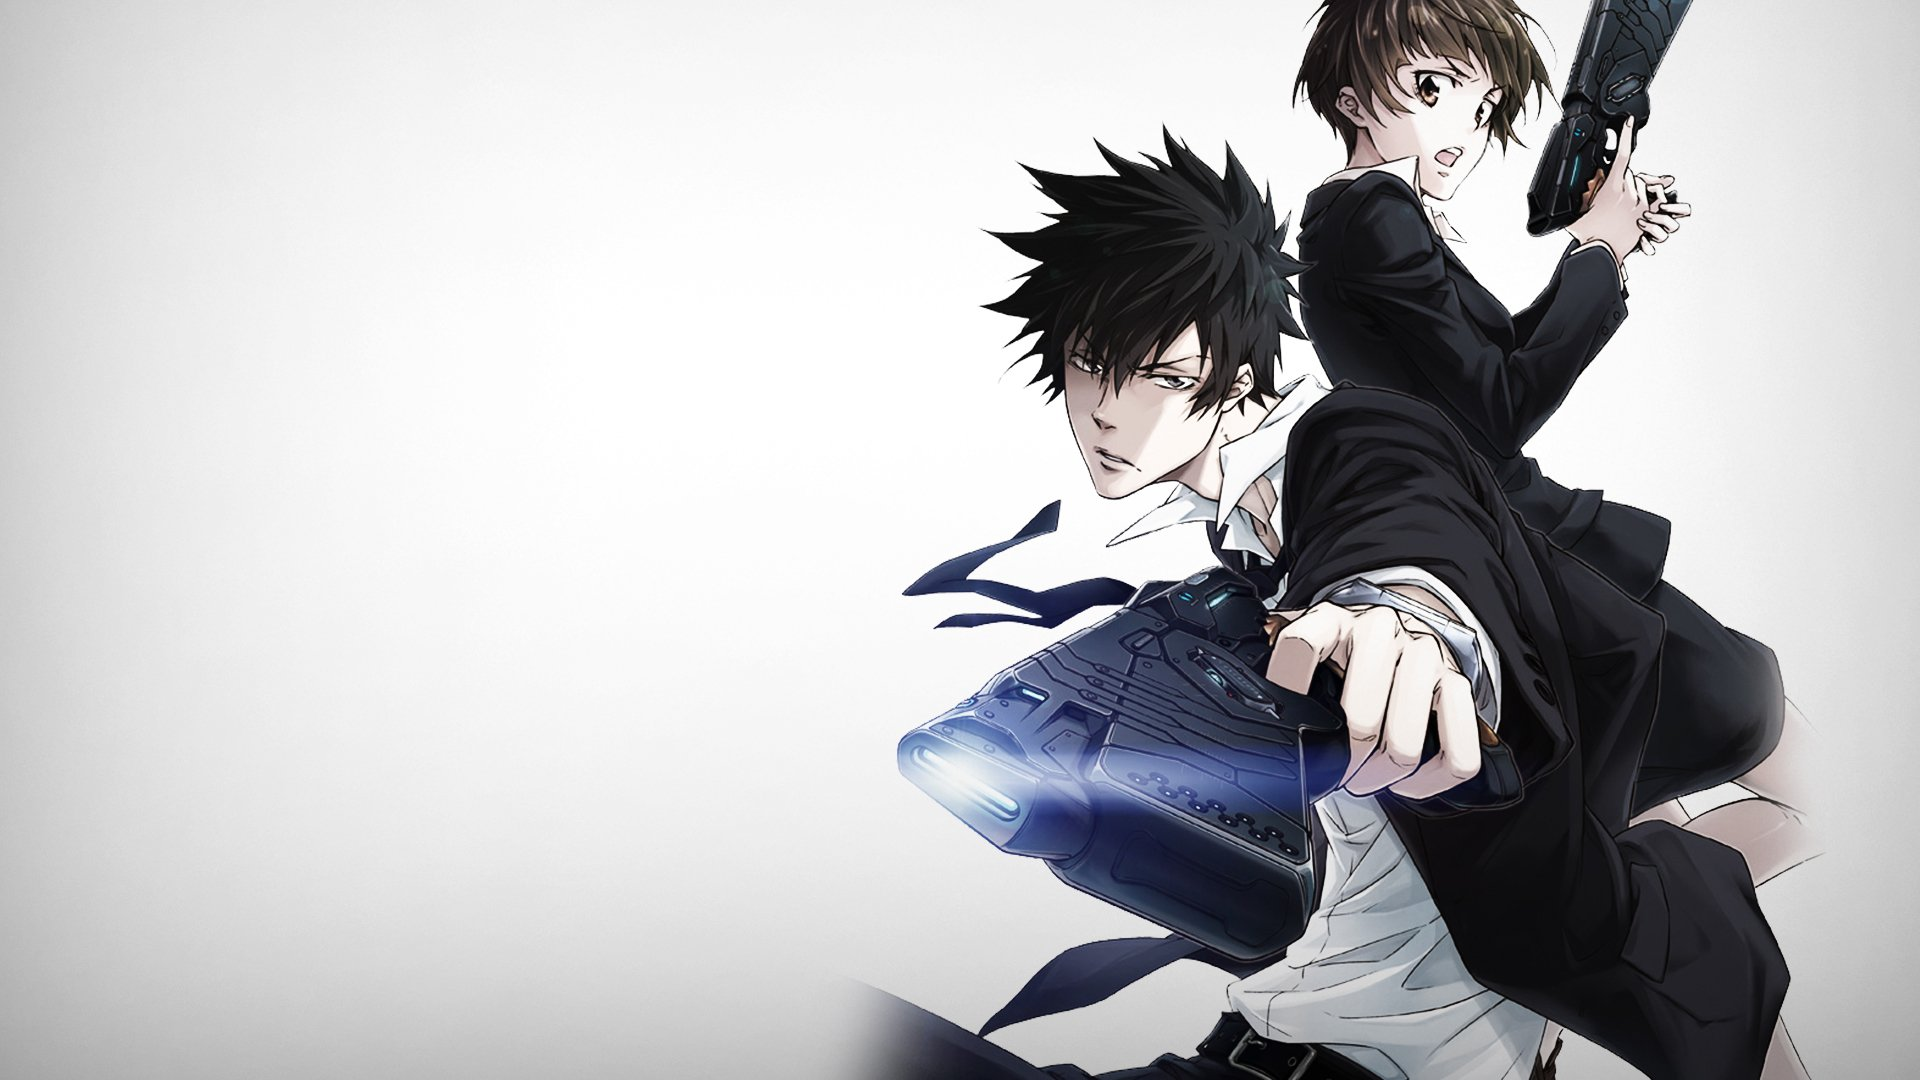 Psycho Pass Hd Wallpaper Background Image 1920x1080 Id607187